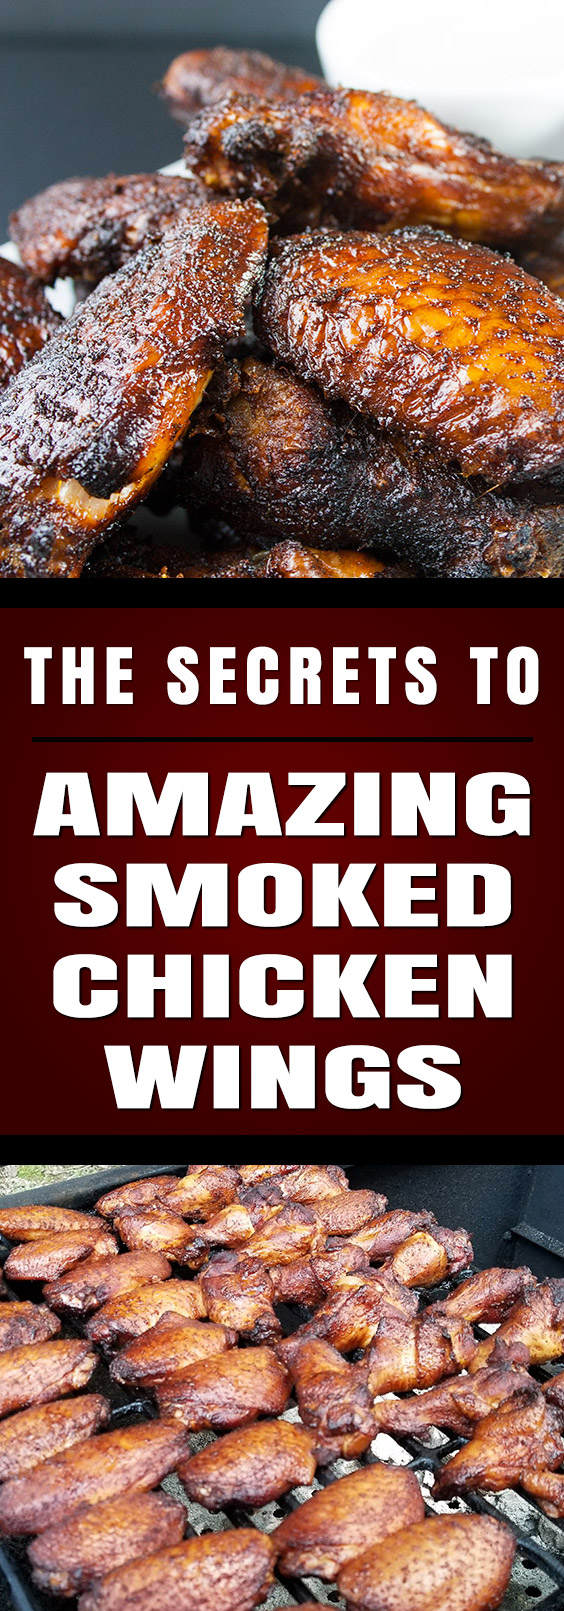 Amazing Smoked Chicken Wings - The Secrets to making amazingly delicious smoked wings with step by step instructions. These will be a smashing success at any kind of get-together. MUST TRY! #wings #chickenwings #bbq #smoking #grilling #tailgating